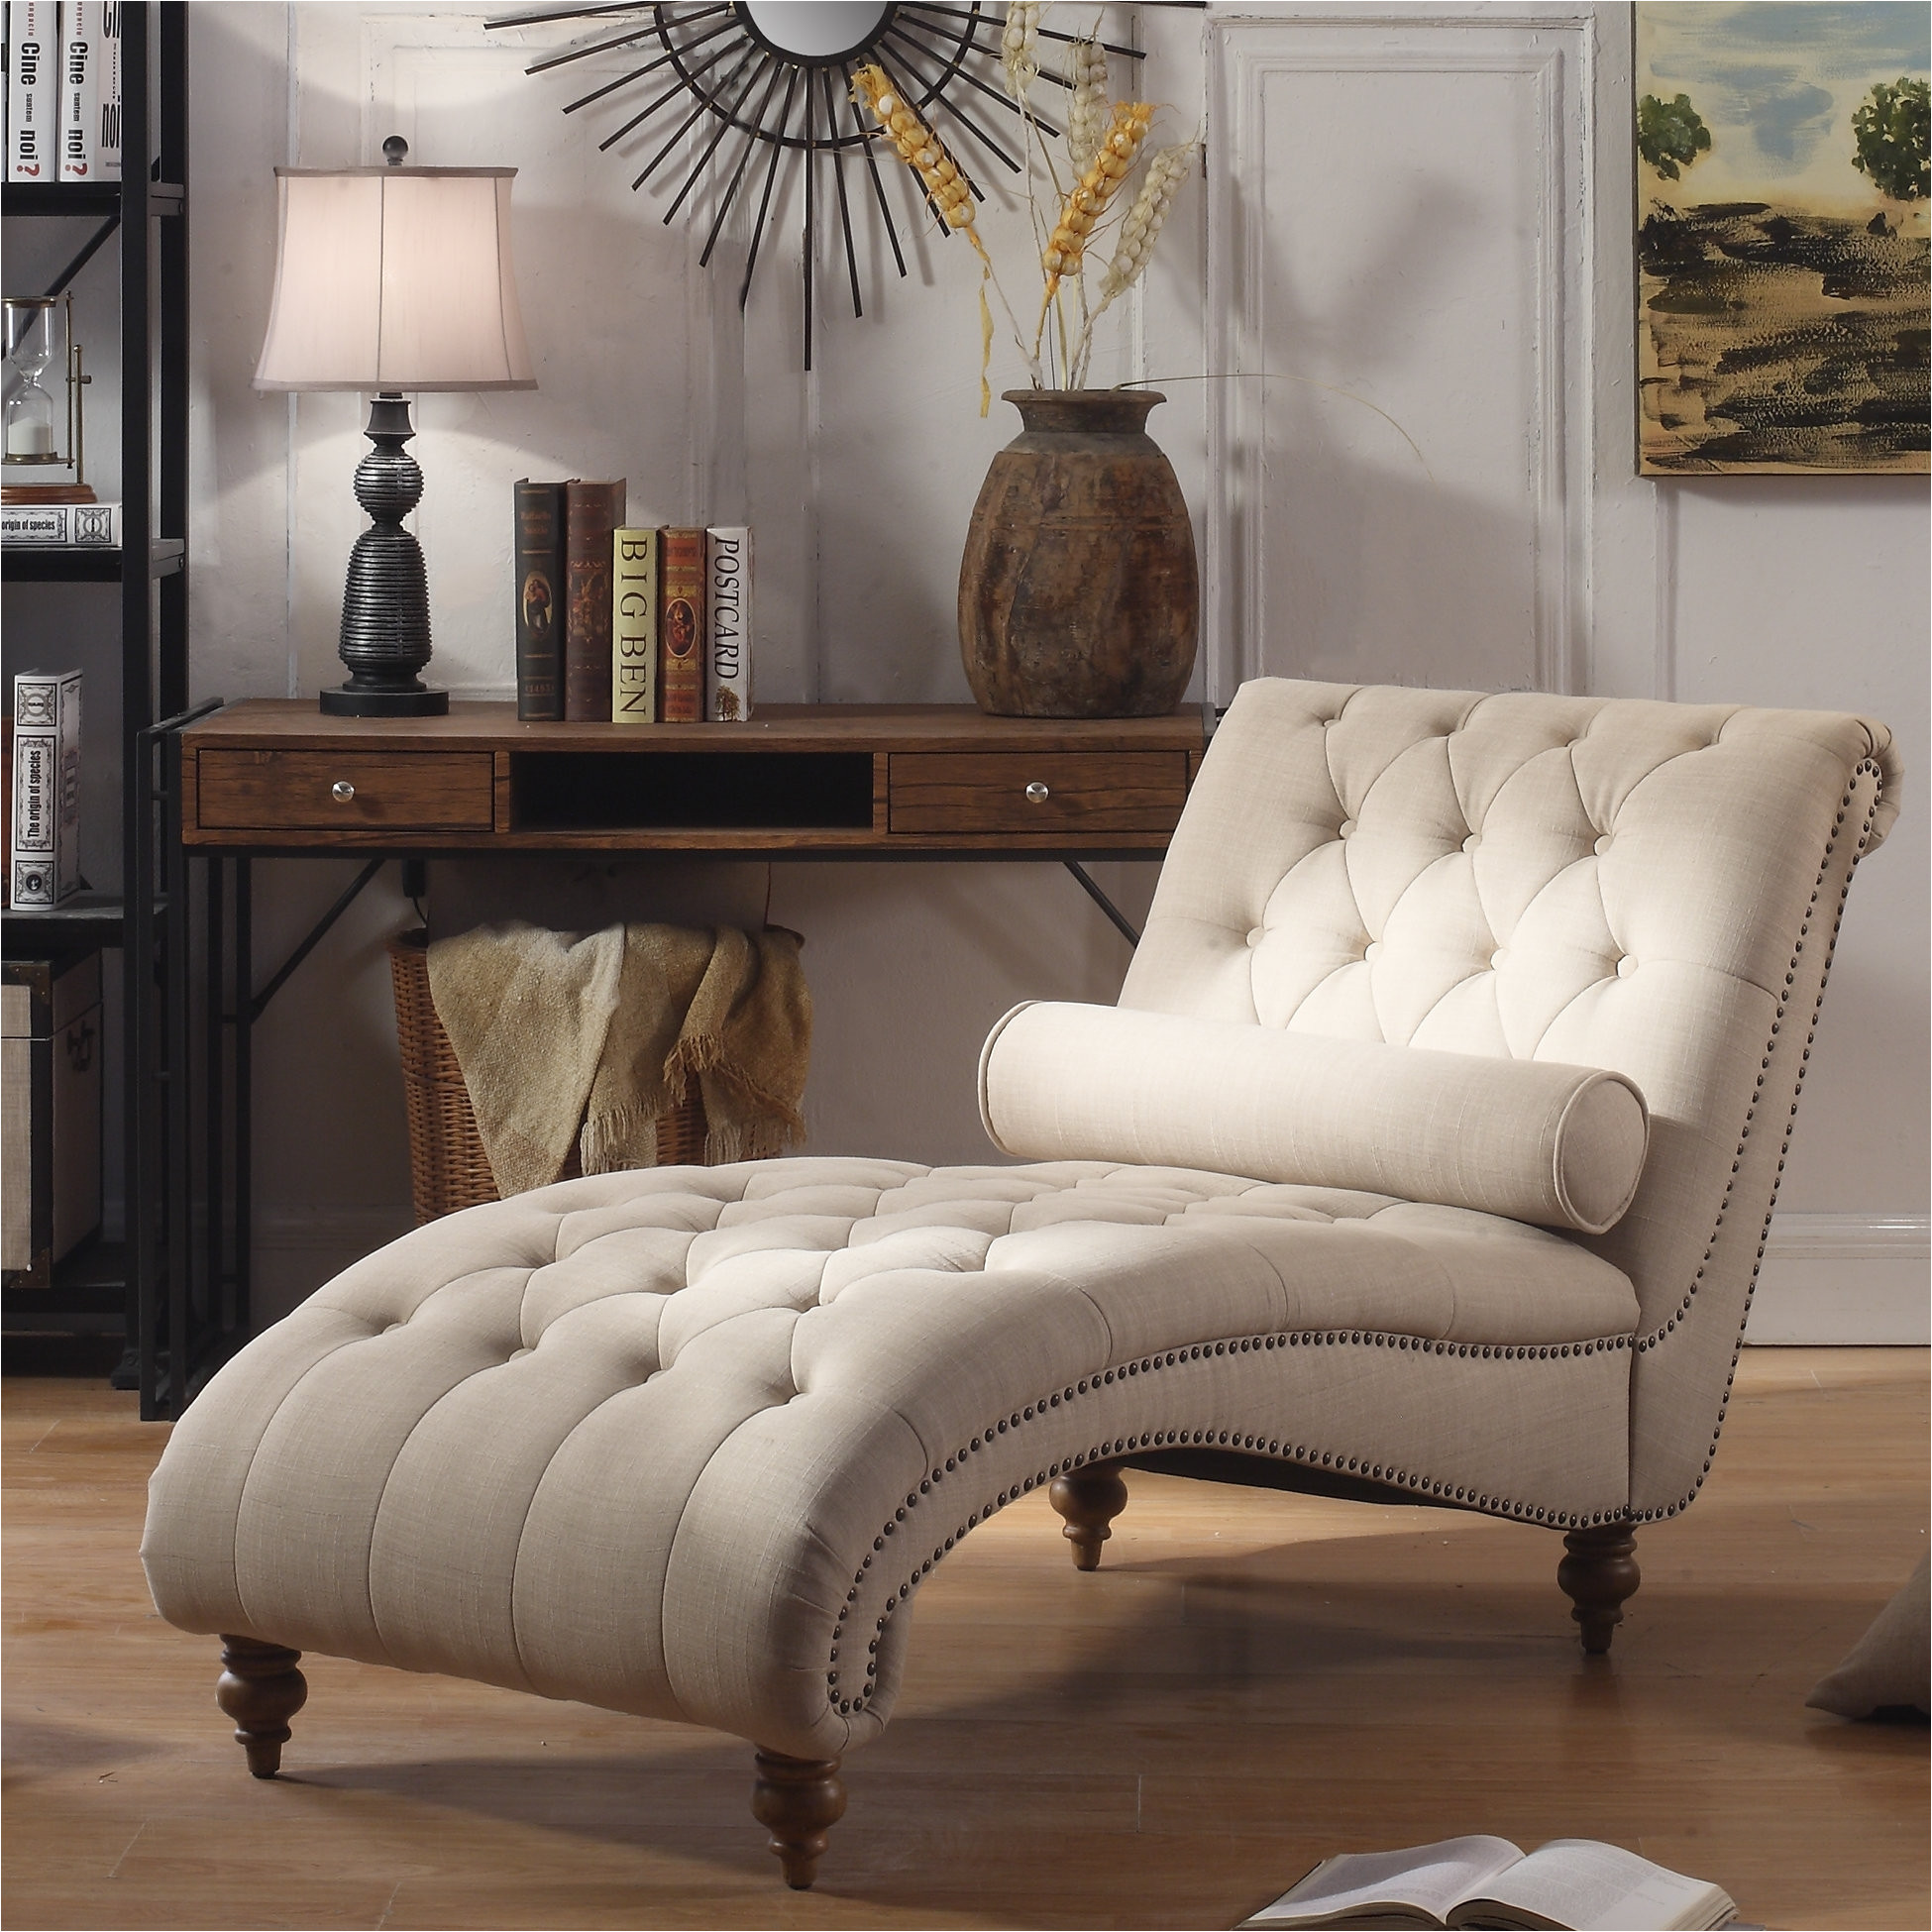 Bainbridge Double Fabric Chaise Costco  AdinaPorter